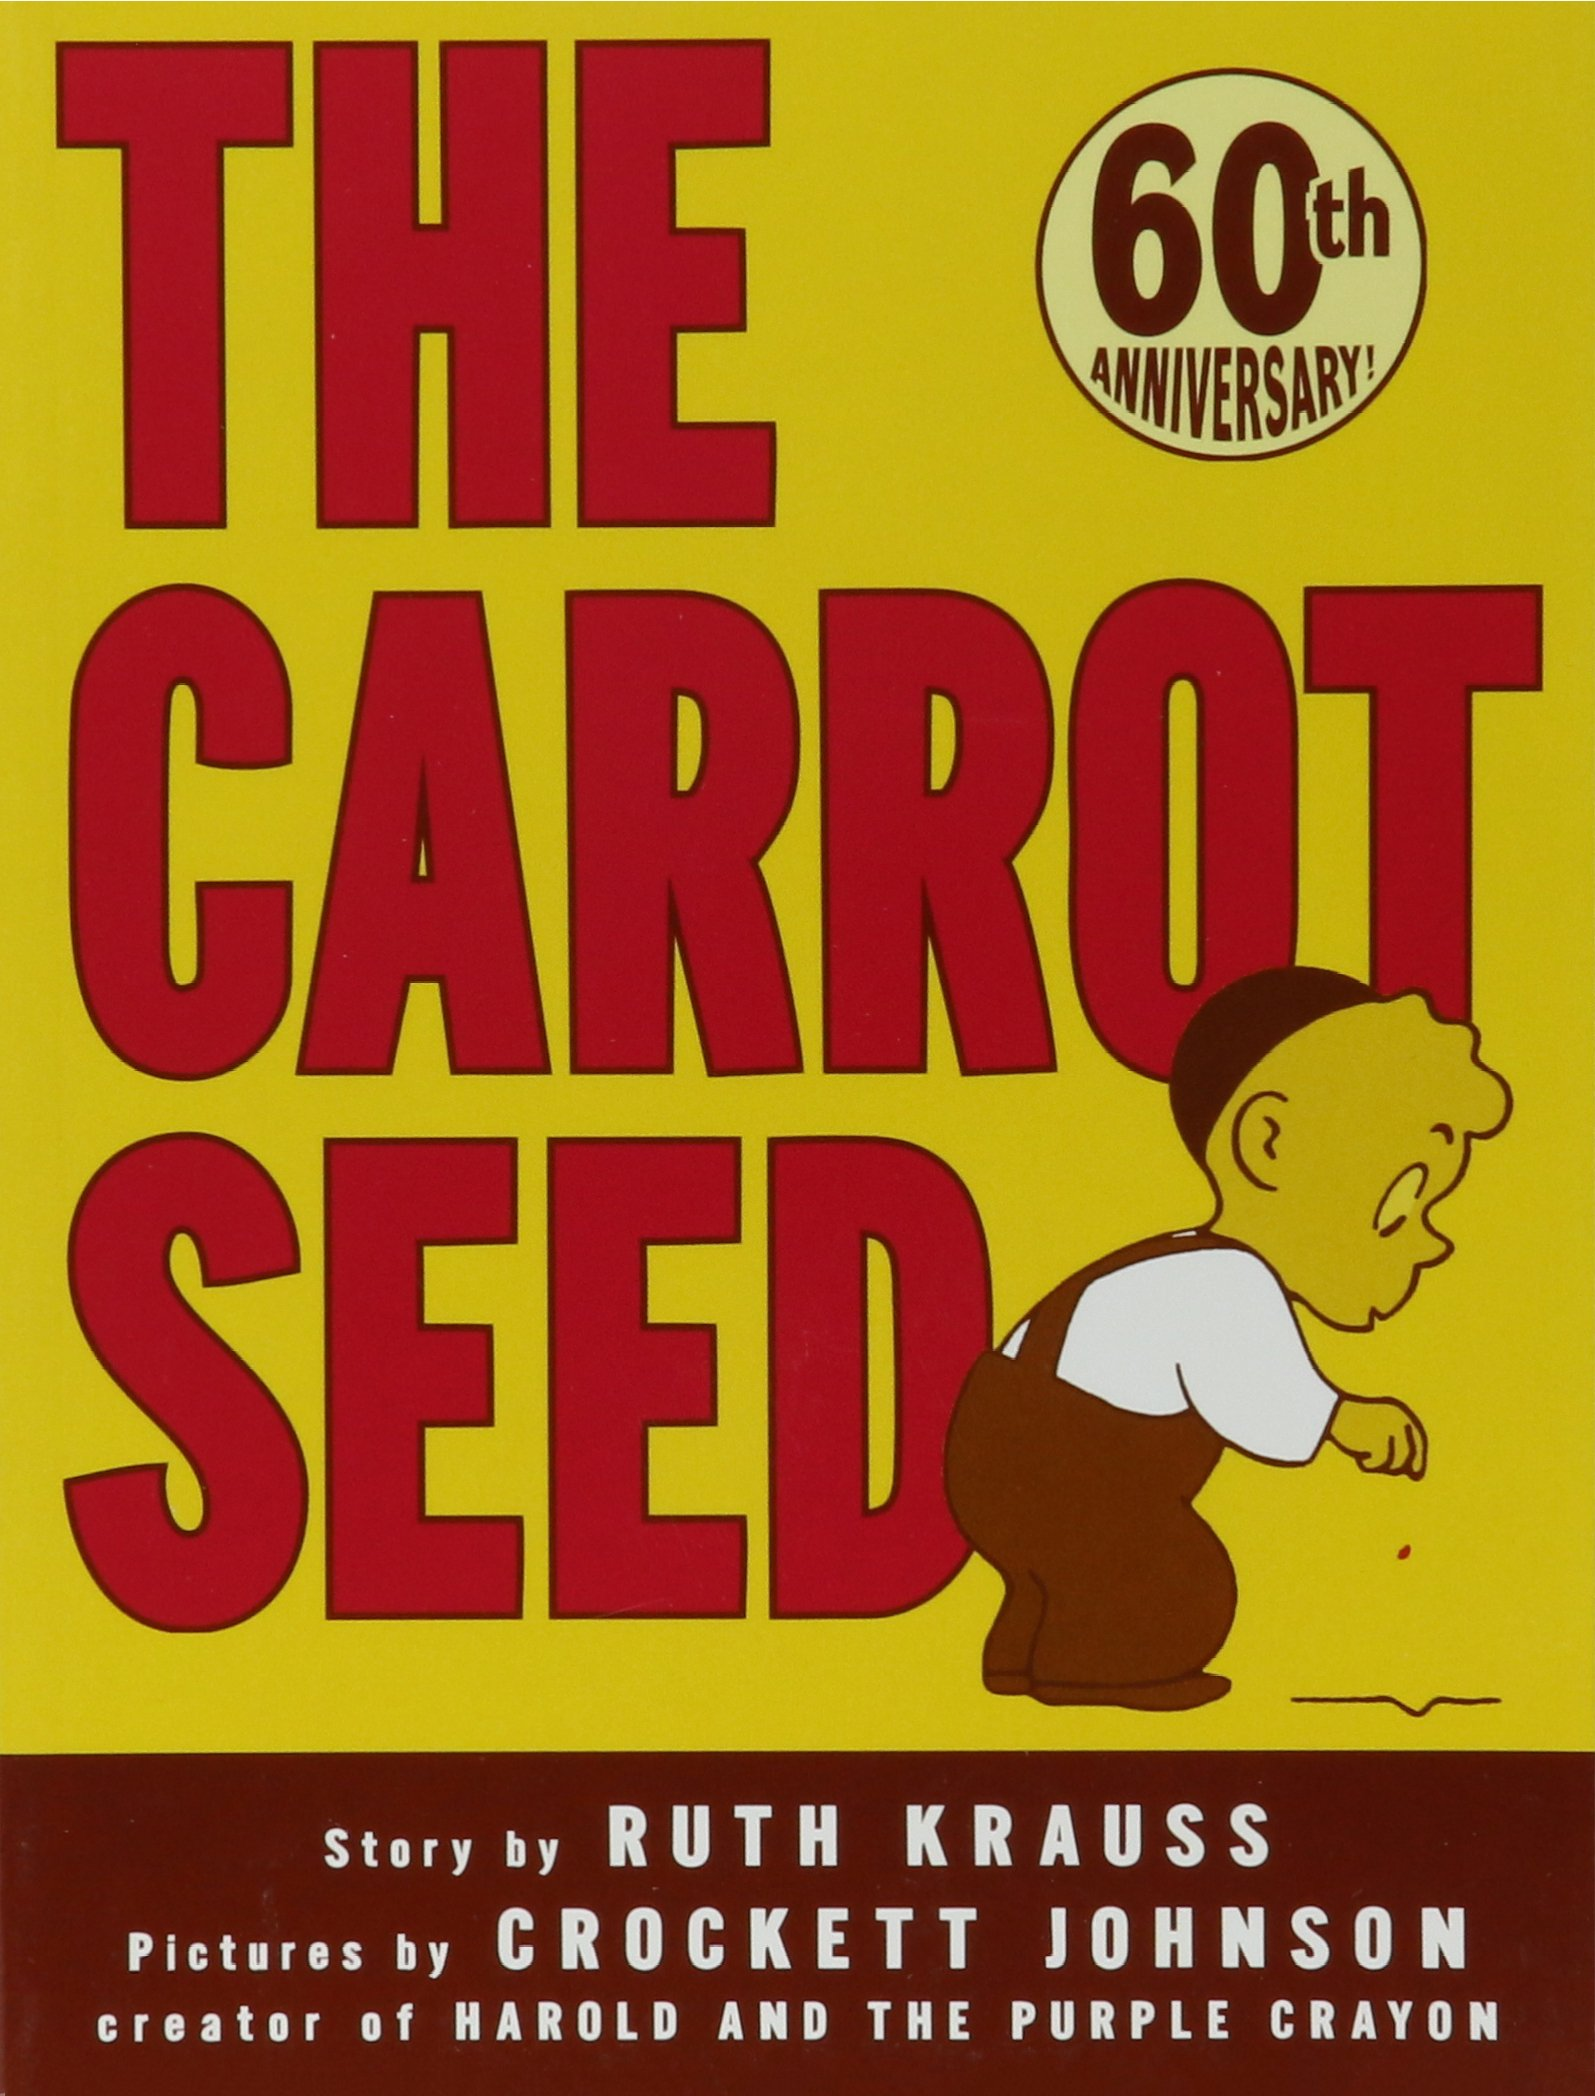 The Carrot Seed (Book and CD) ebook